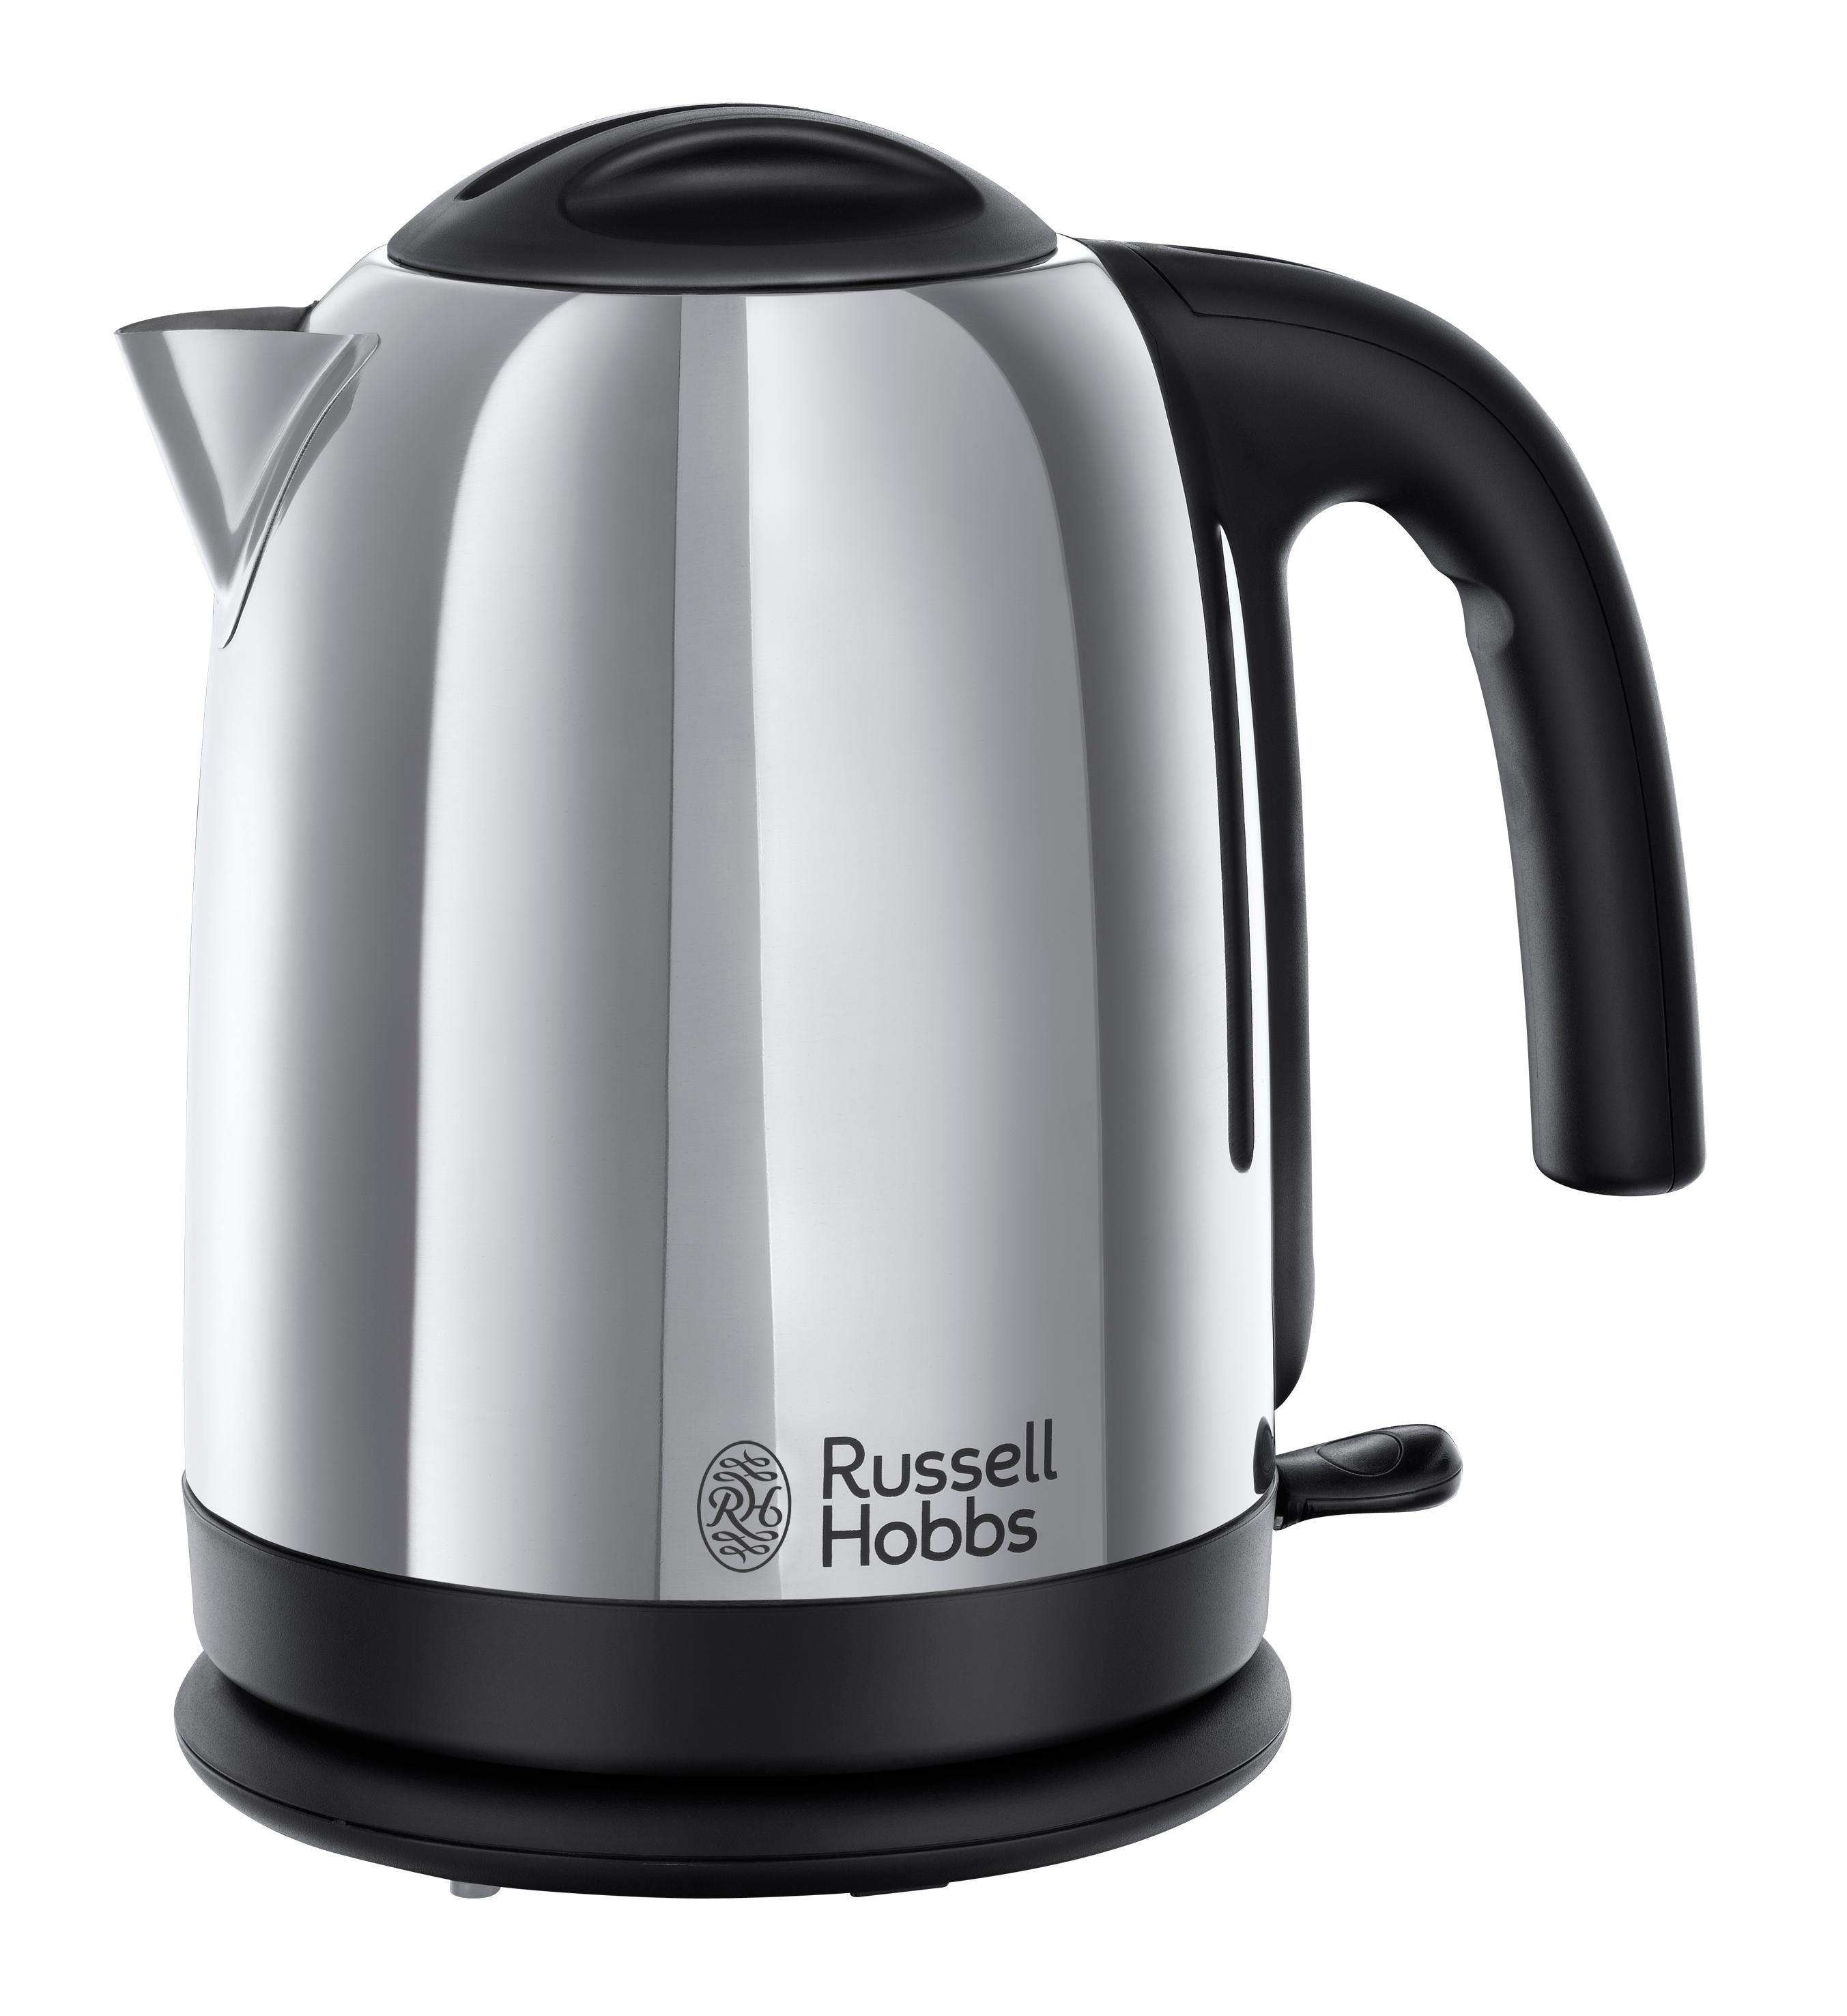 5 X Russell Hobbs 20070 Cambridge Kettle, 1.7 L - Brushed Stainless ...